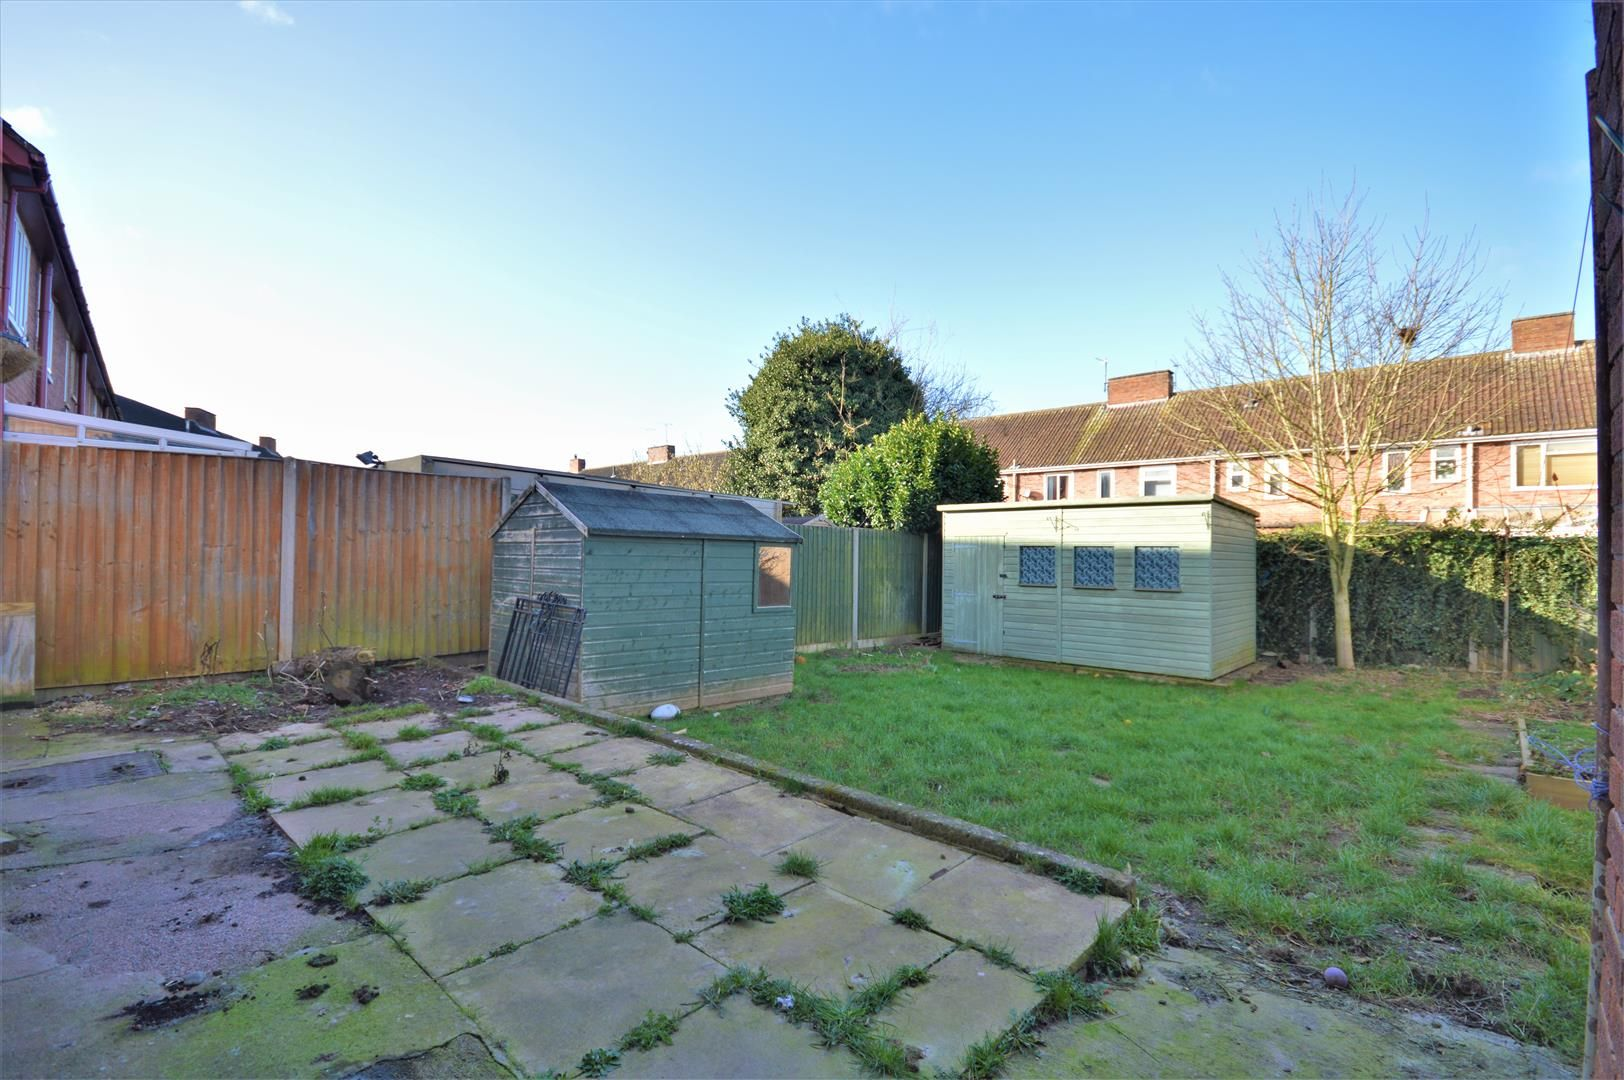 3 bed end-of-terrace for sale in Hereford  - Property Image 14